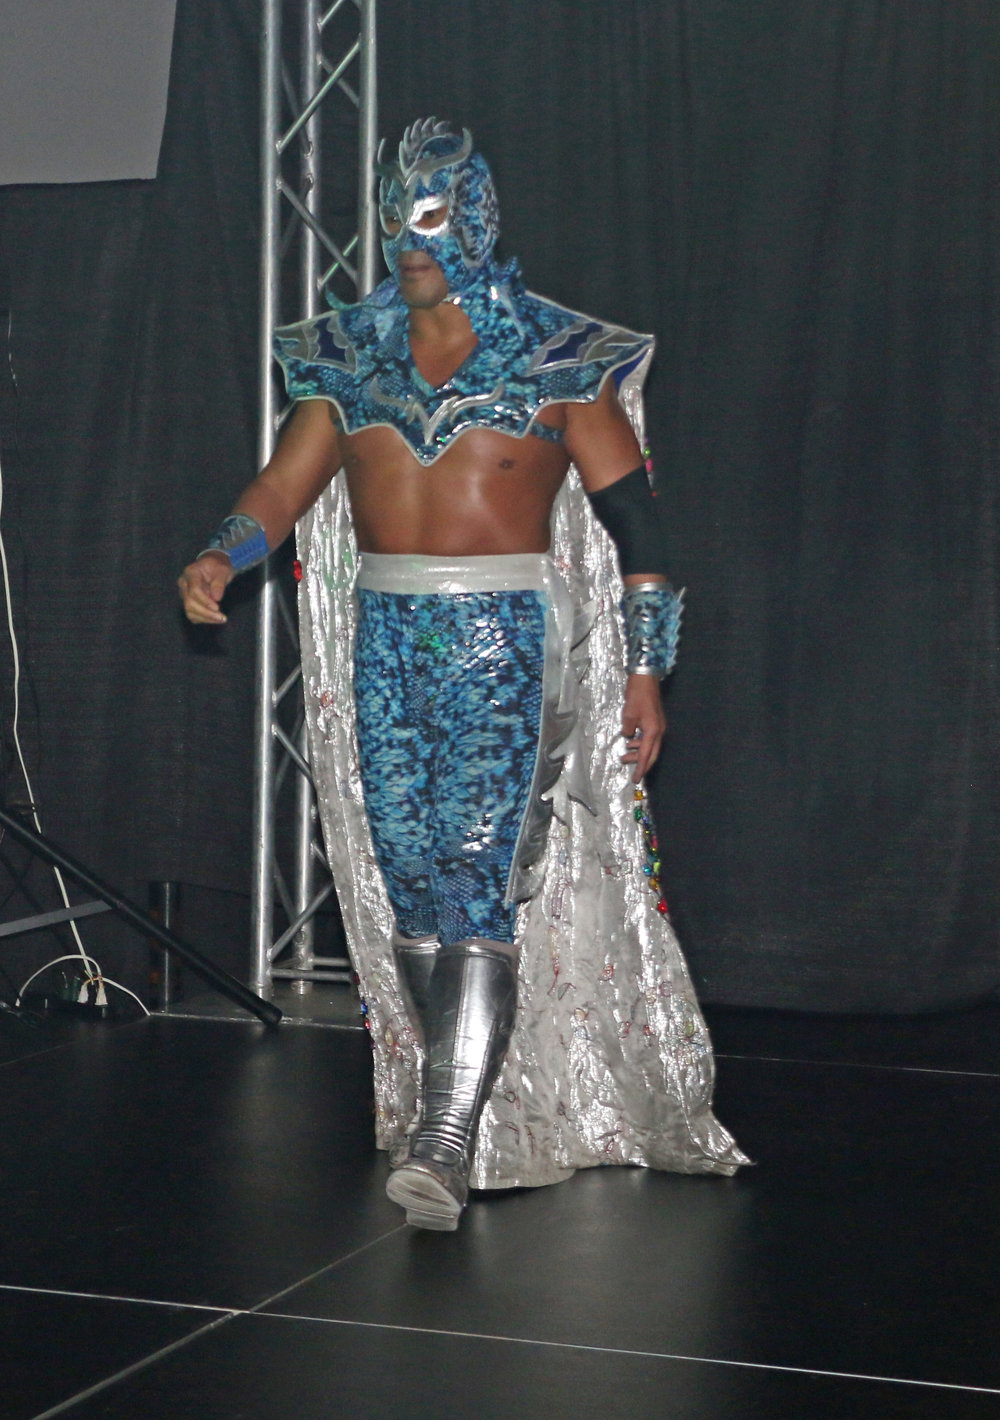 WCW and WWE legend Ultimo Dragon walks down the ramp before the trios match.